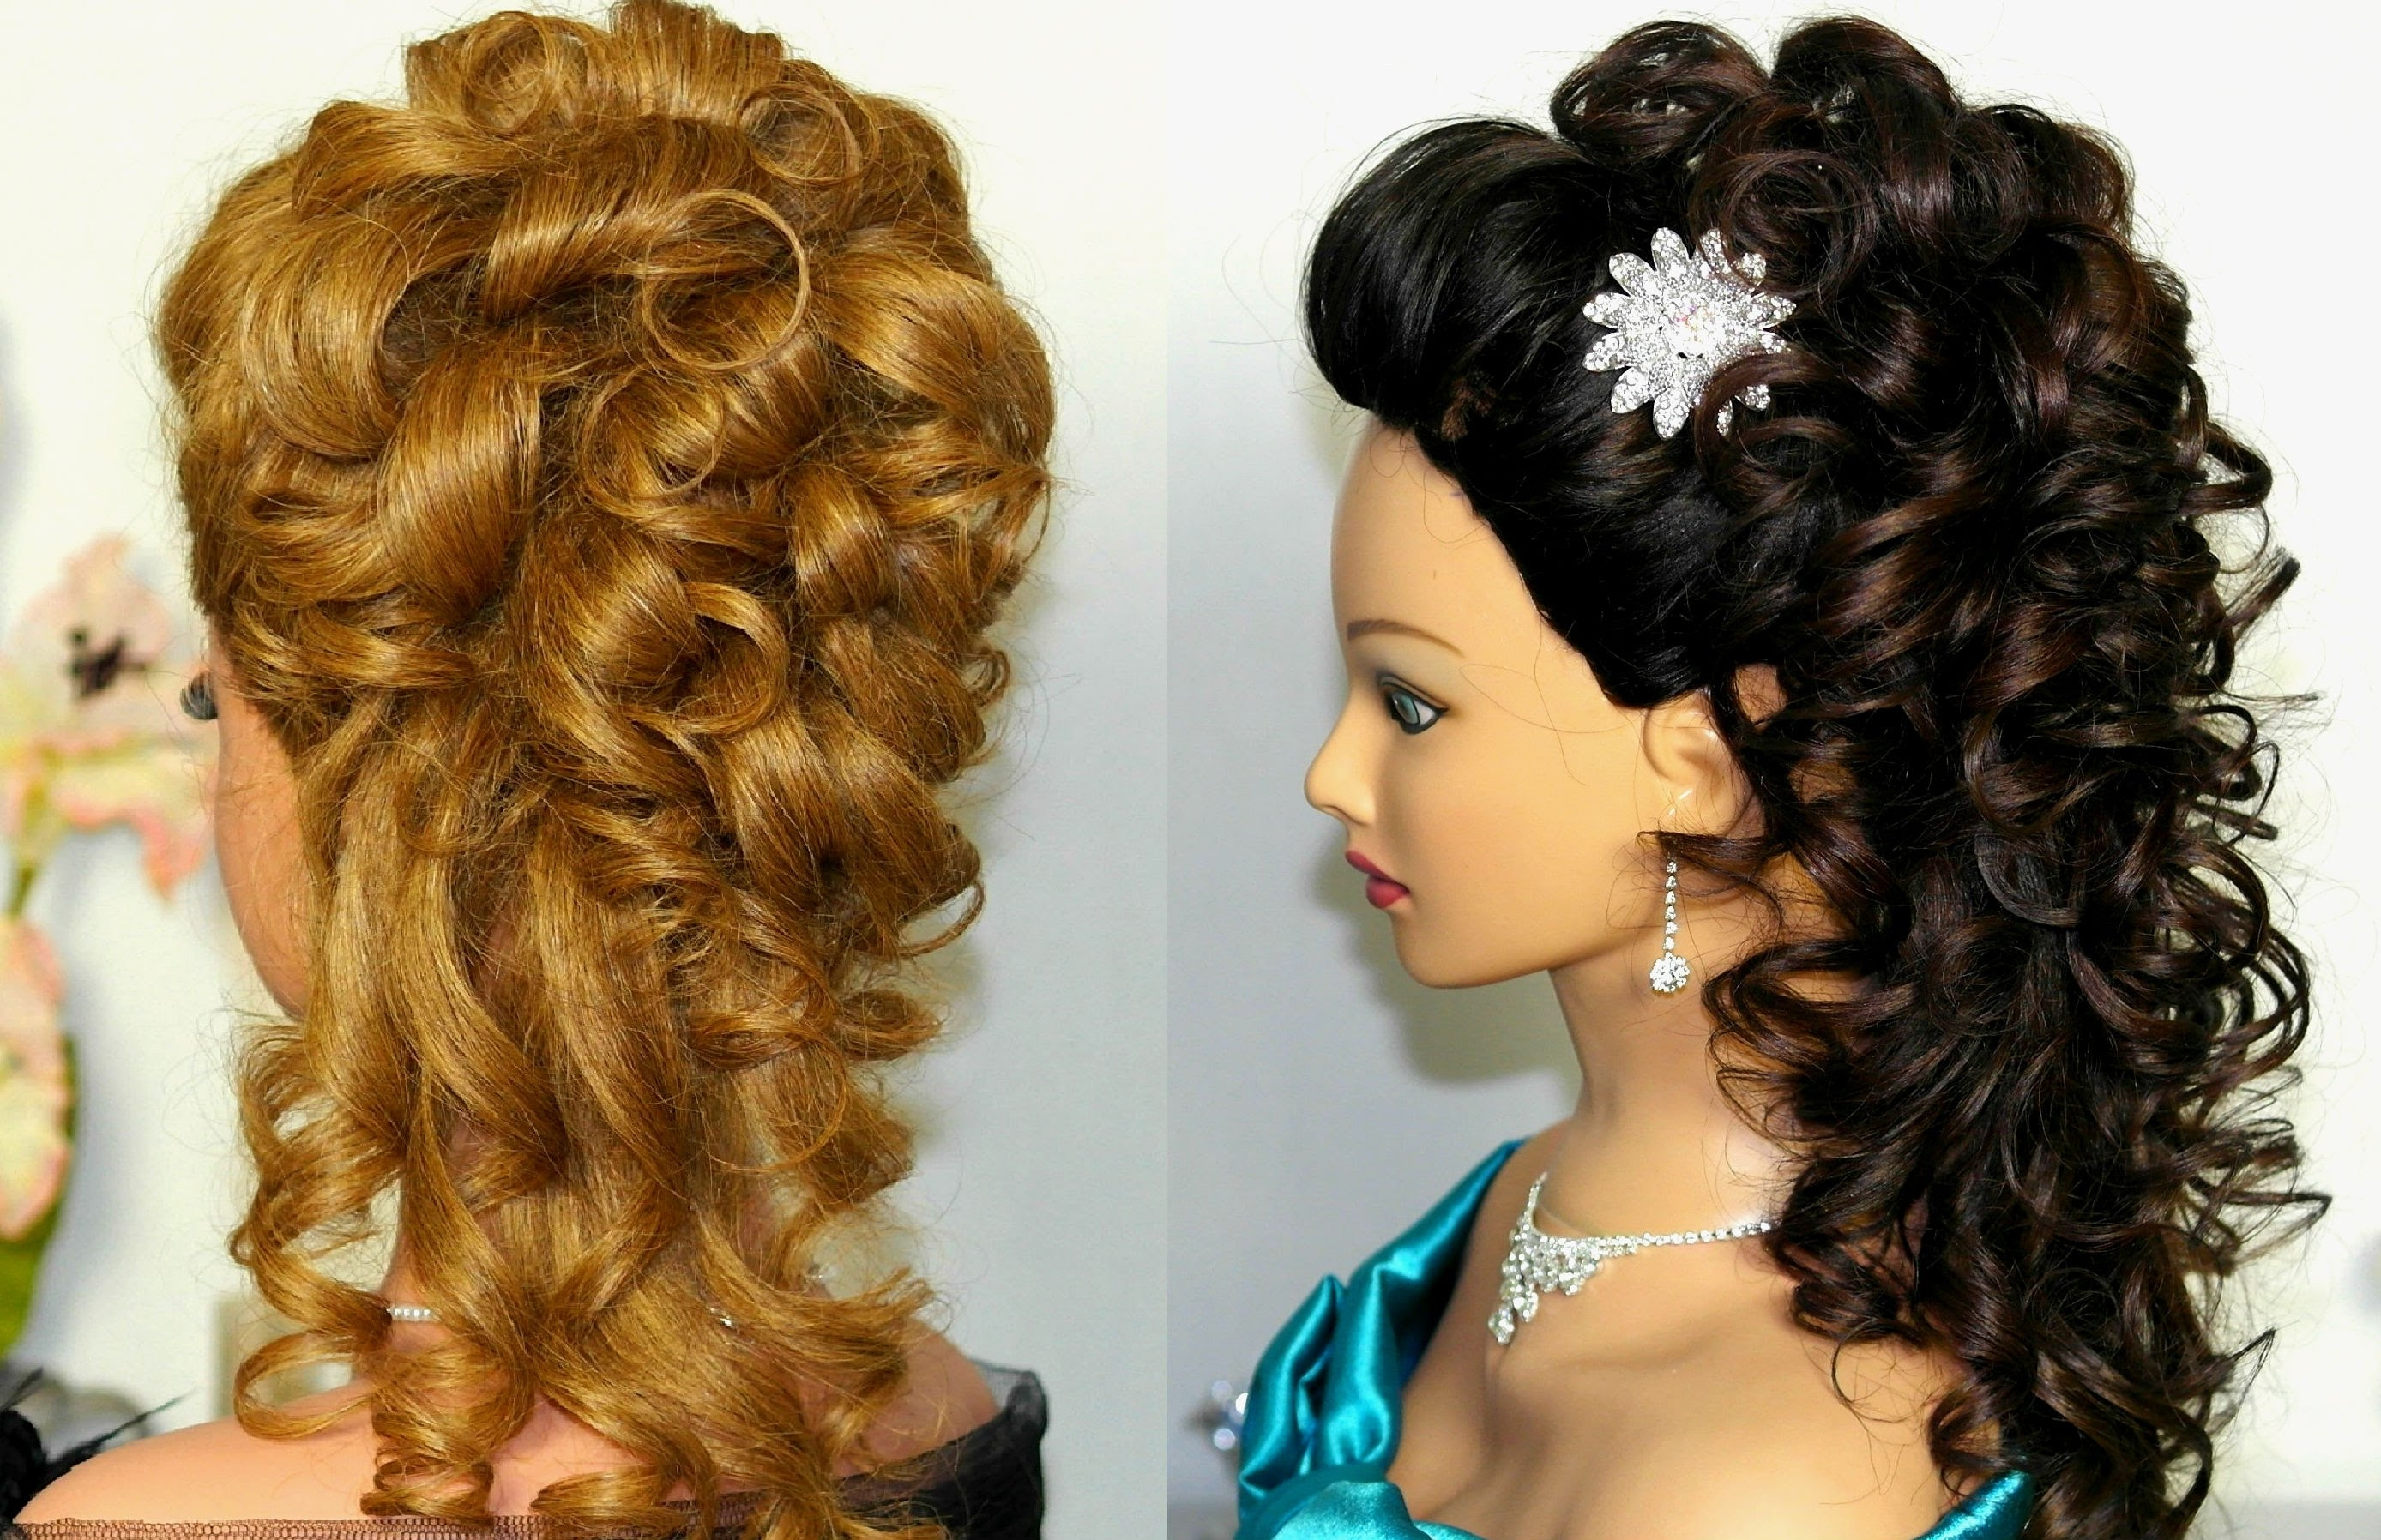 Current Wedding Hairstyles With Curls Inside Bridal, Prom Hairstyle For Long Hair. Curly Hairstyle (View 8 of 15)